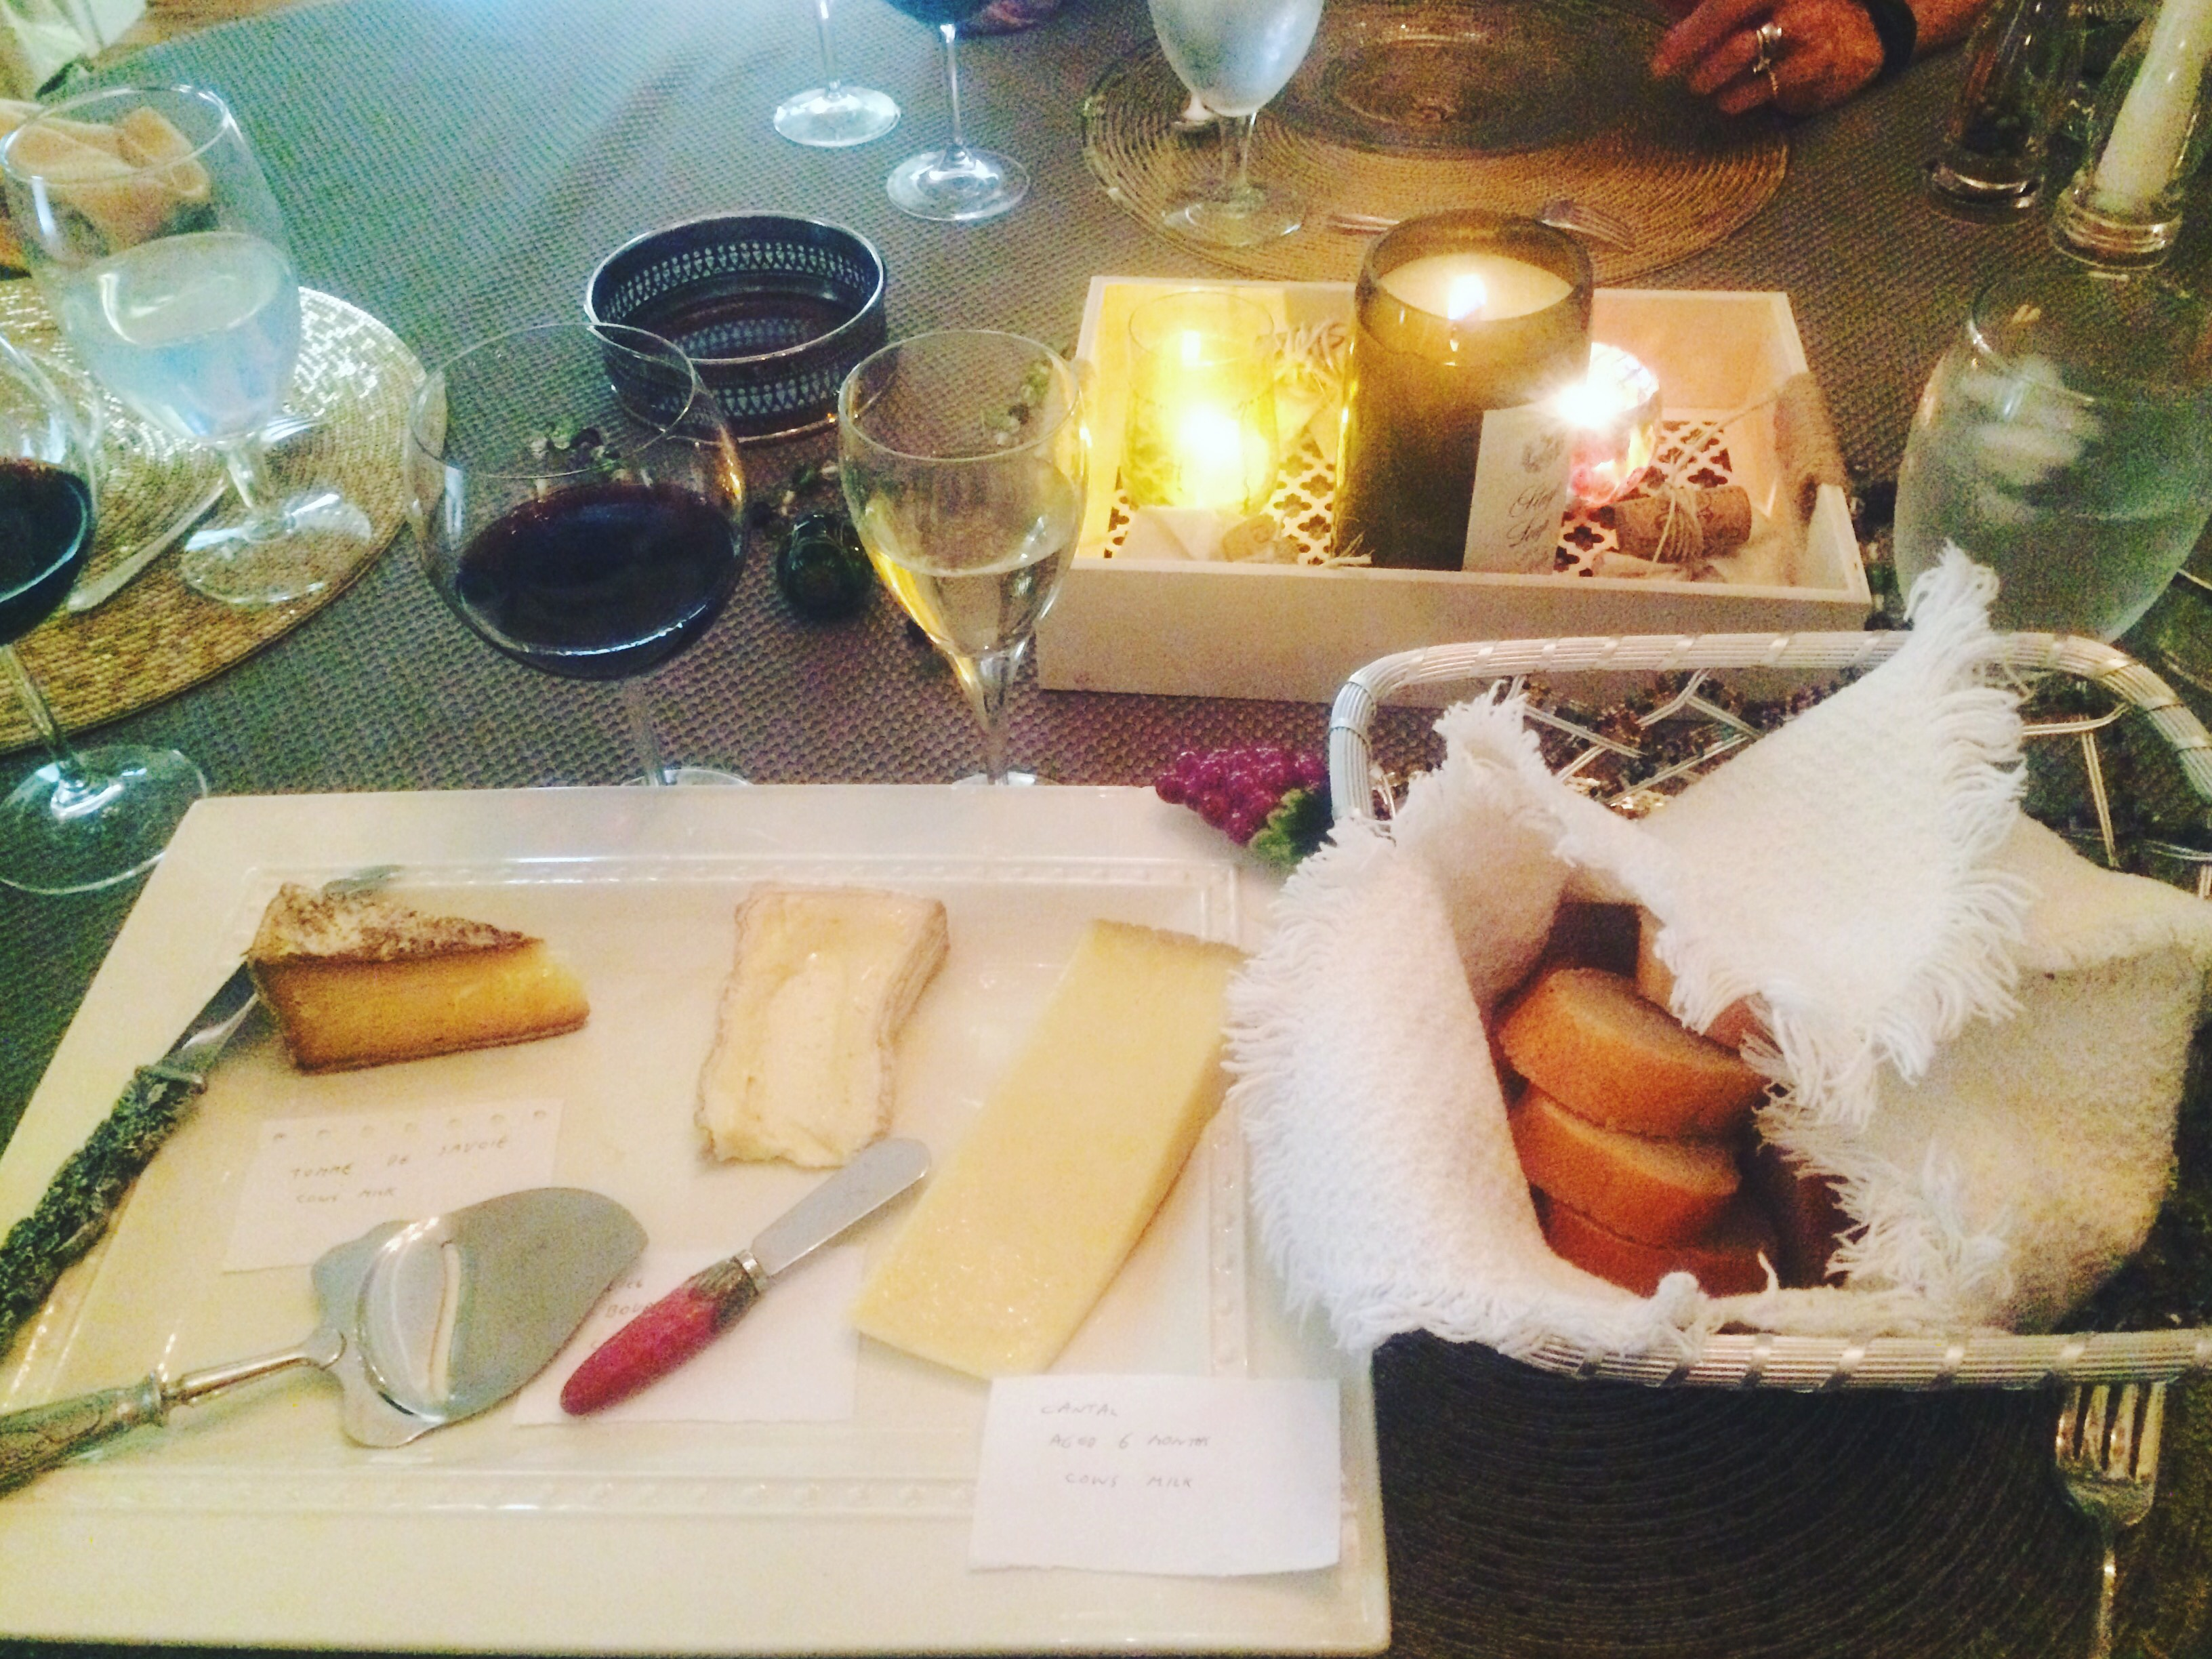 French-Inspired Meal: The Cheese Course